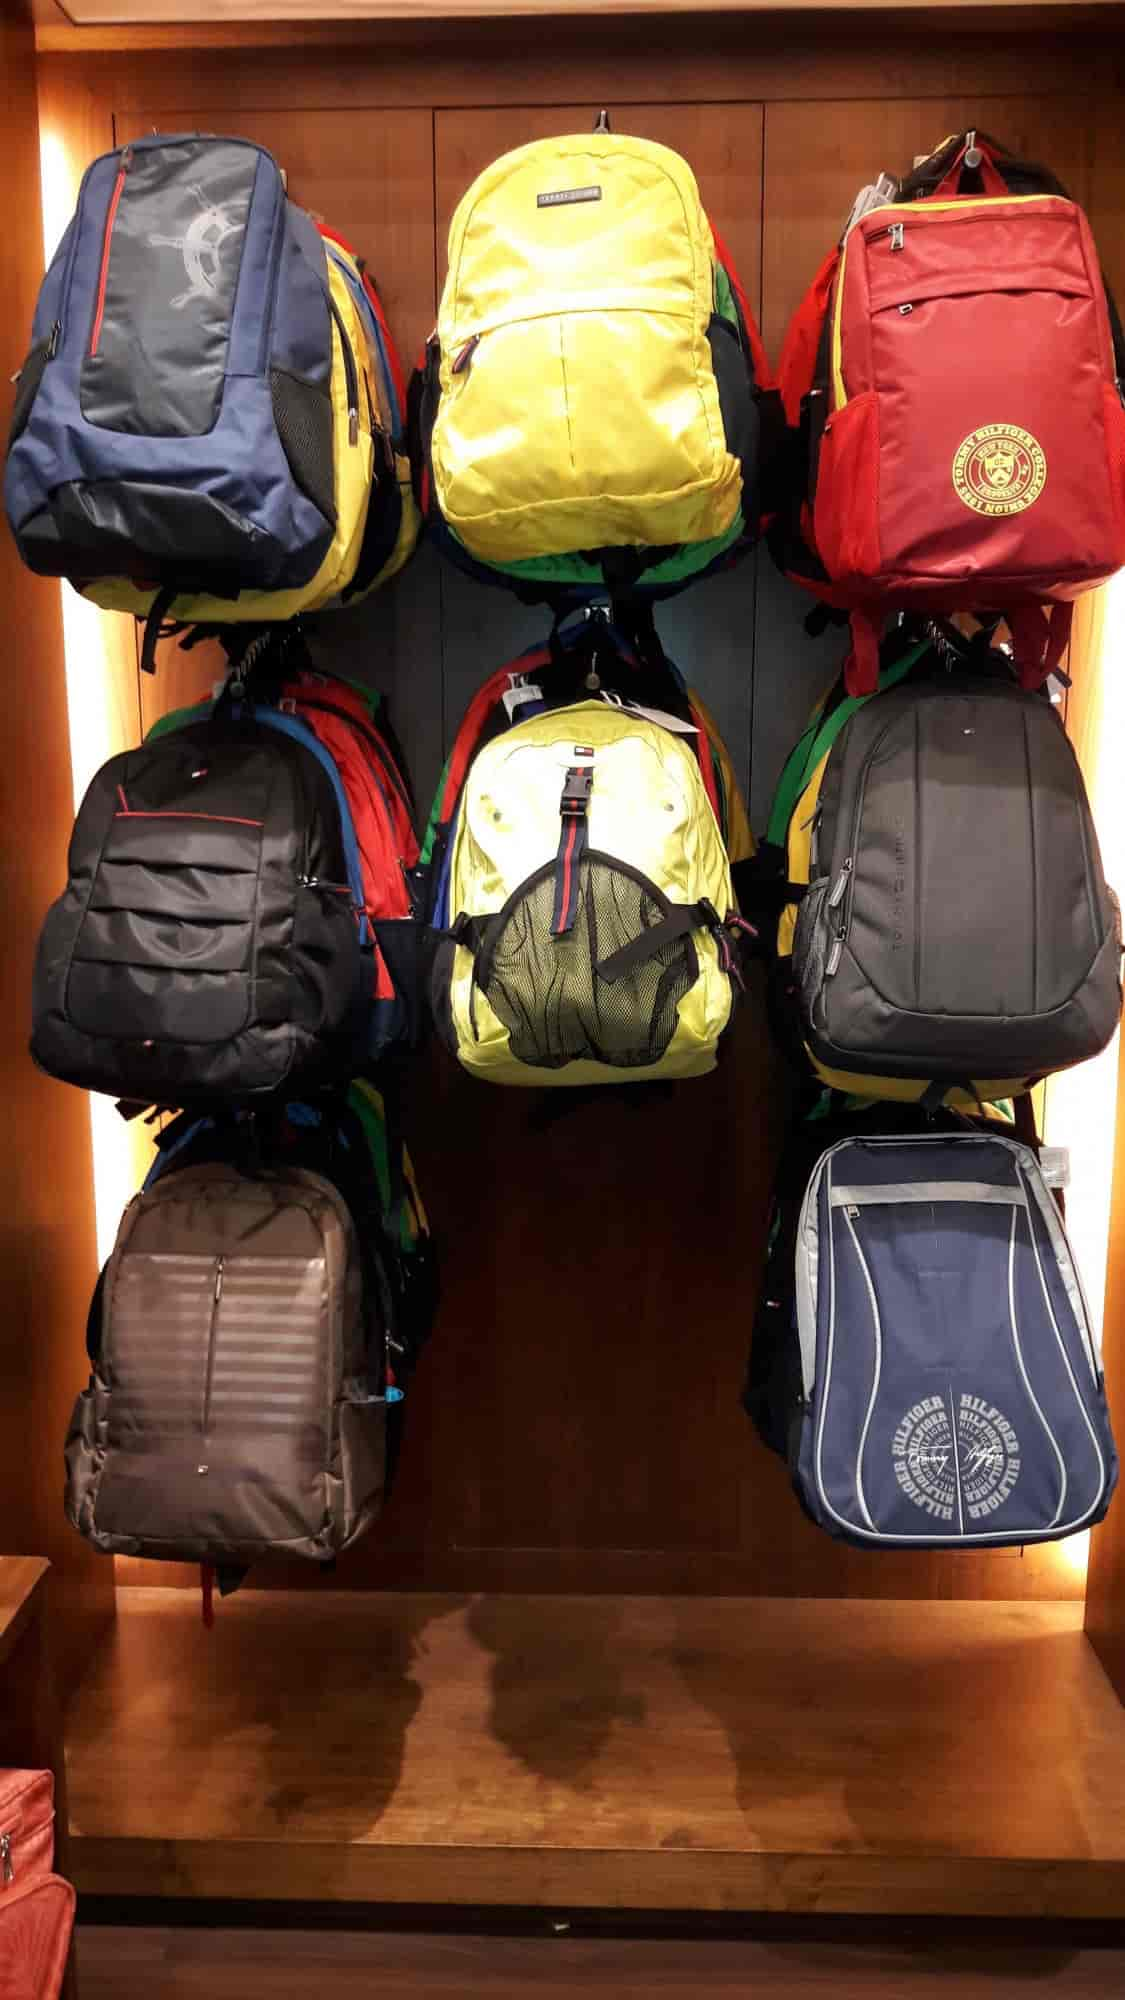 ... BACKPACKS - Tommy Hilfiger Travel Gare (R City Mall) Photos, Ghatkopar  West, 0a397f364a6b